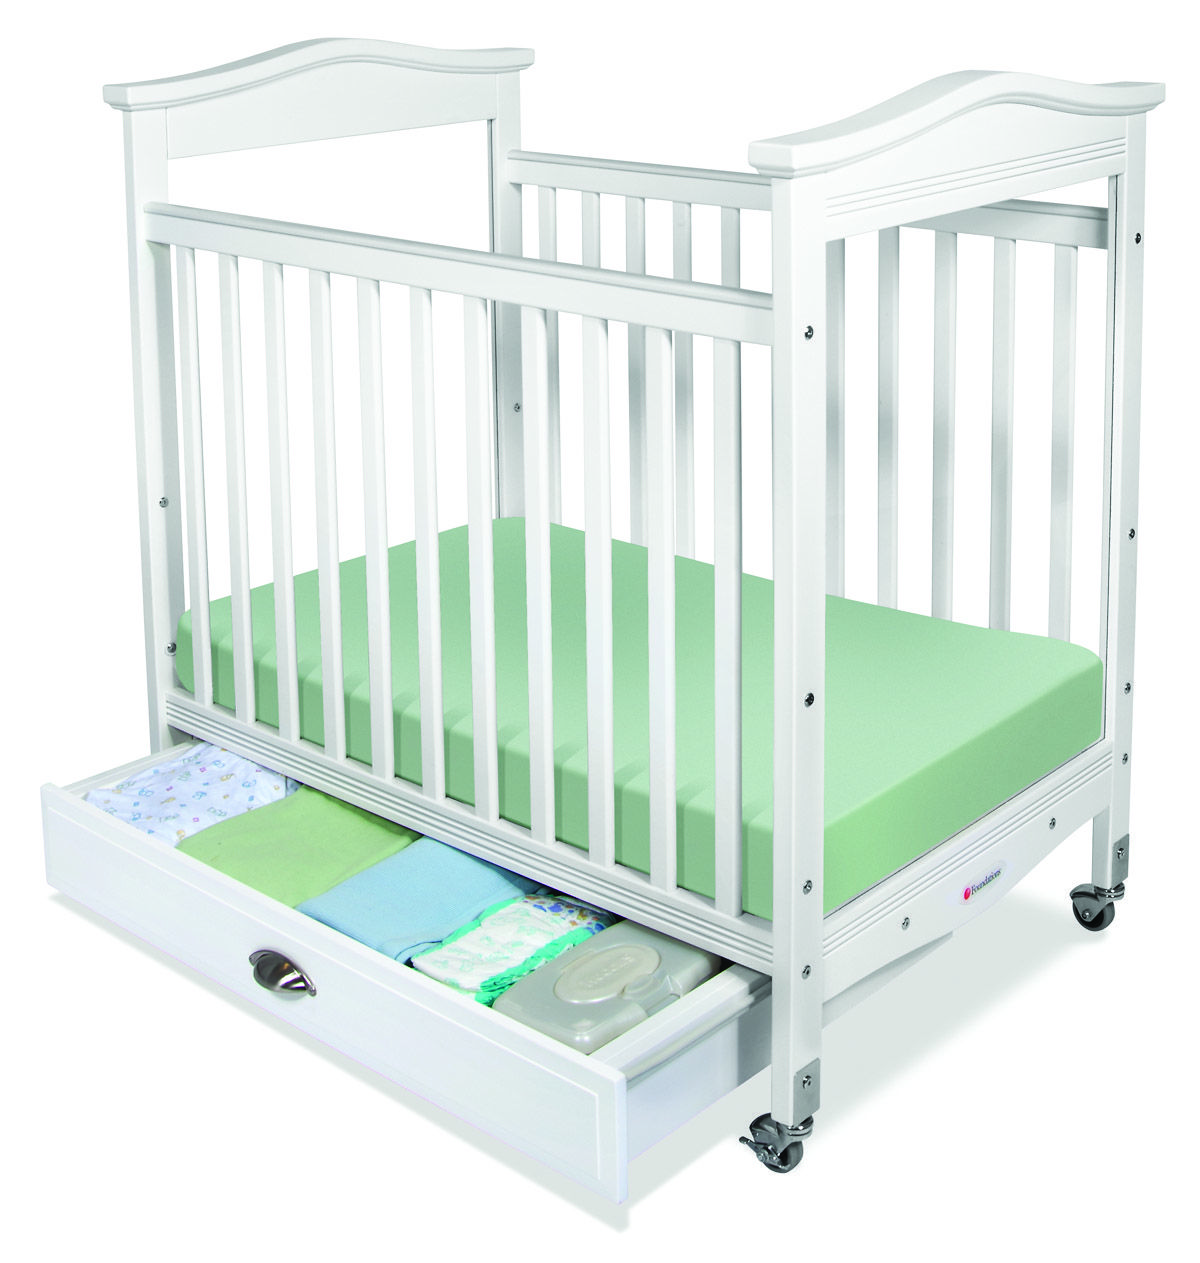 Crib heights for babies - Biltmore White Fixed Side Compact Baby Crib Adjustable Bed Height Clearview Cribs